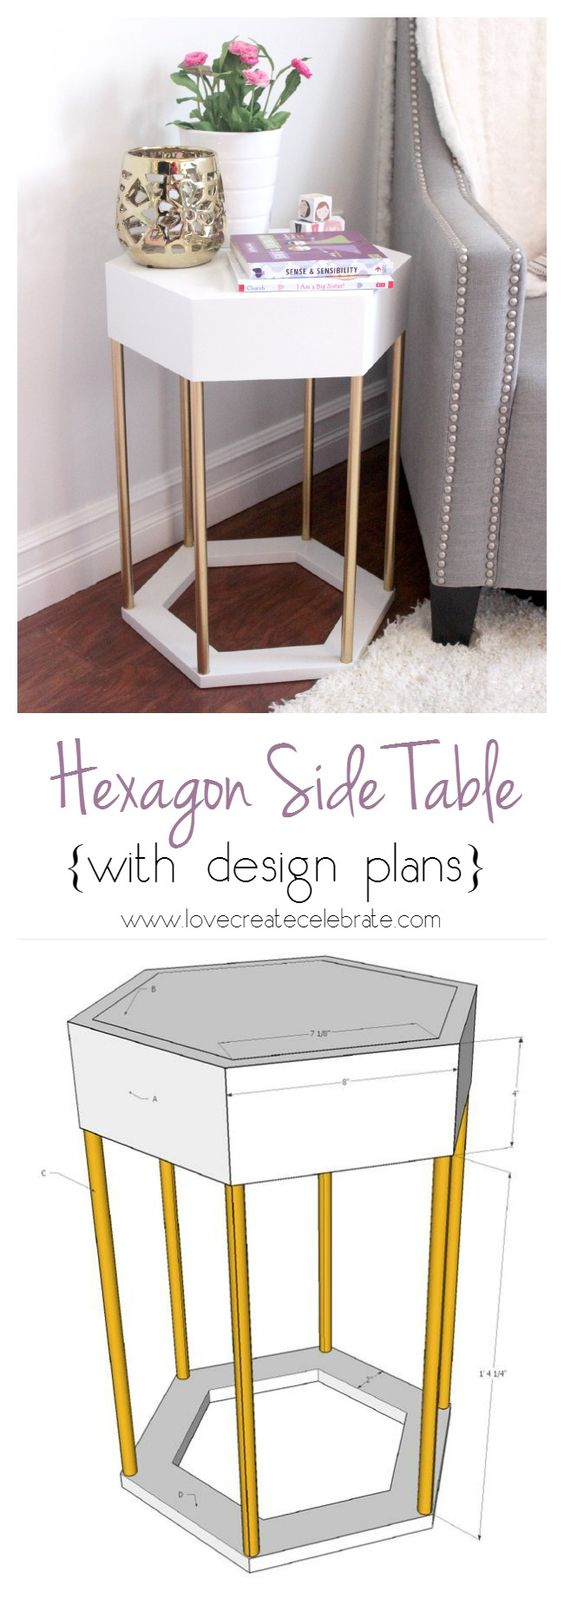 awesome diy side table ideas for outdoors and indoors hative tutorials outdoor accent modern hexagon cloth small black metal garden pearl drum stool walnut extension mini end with